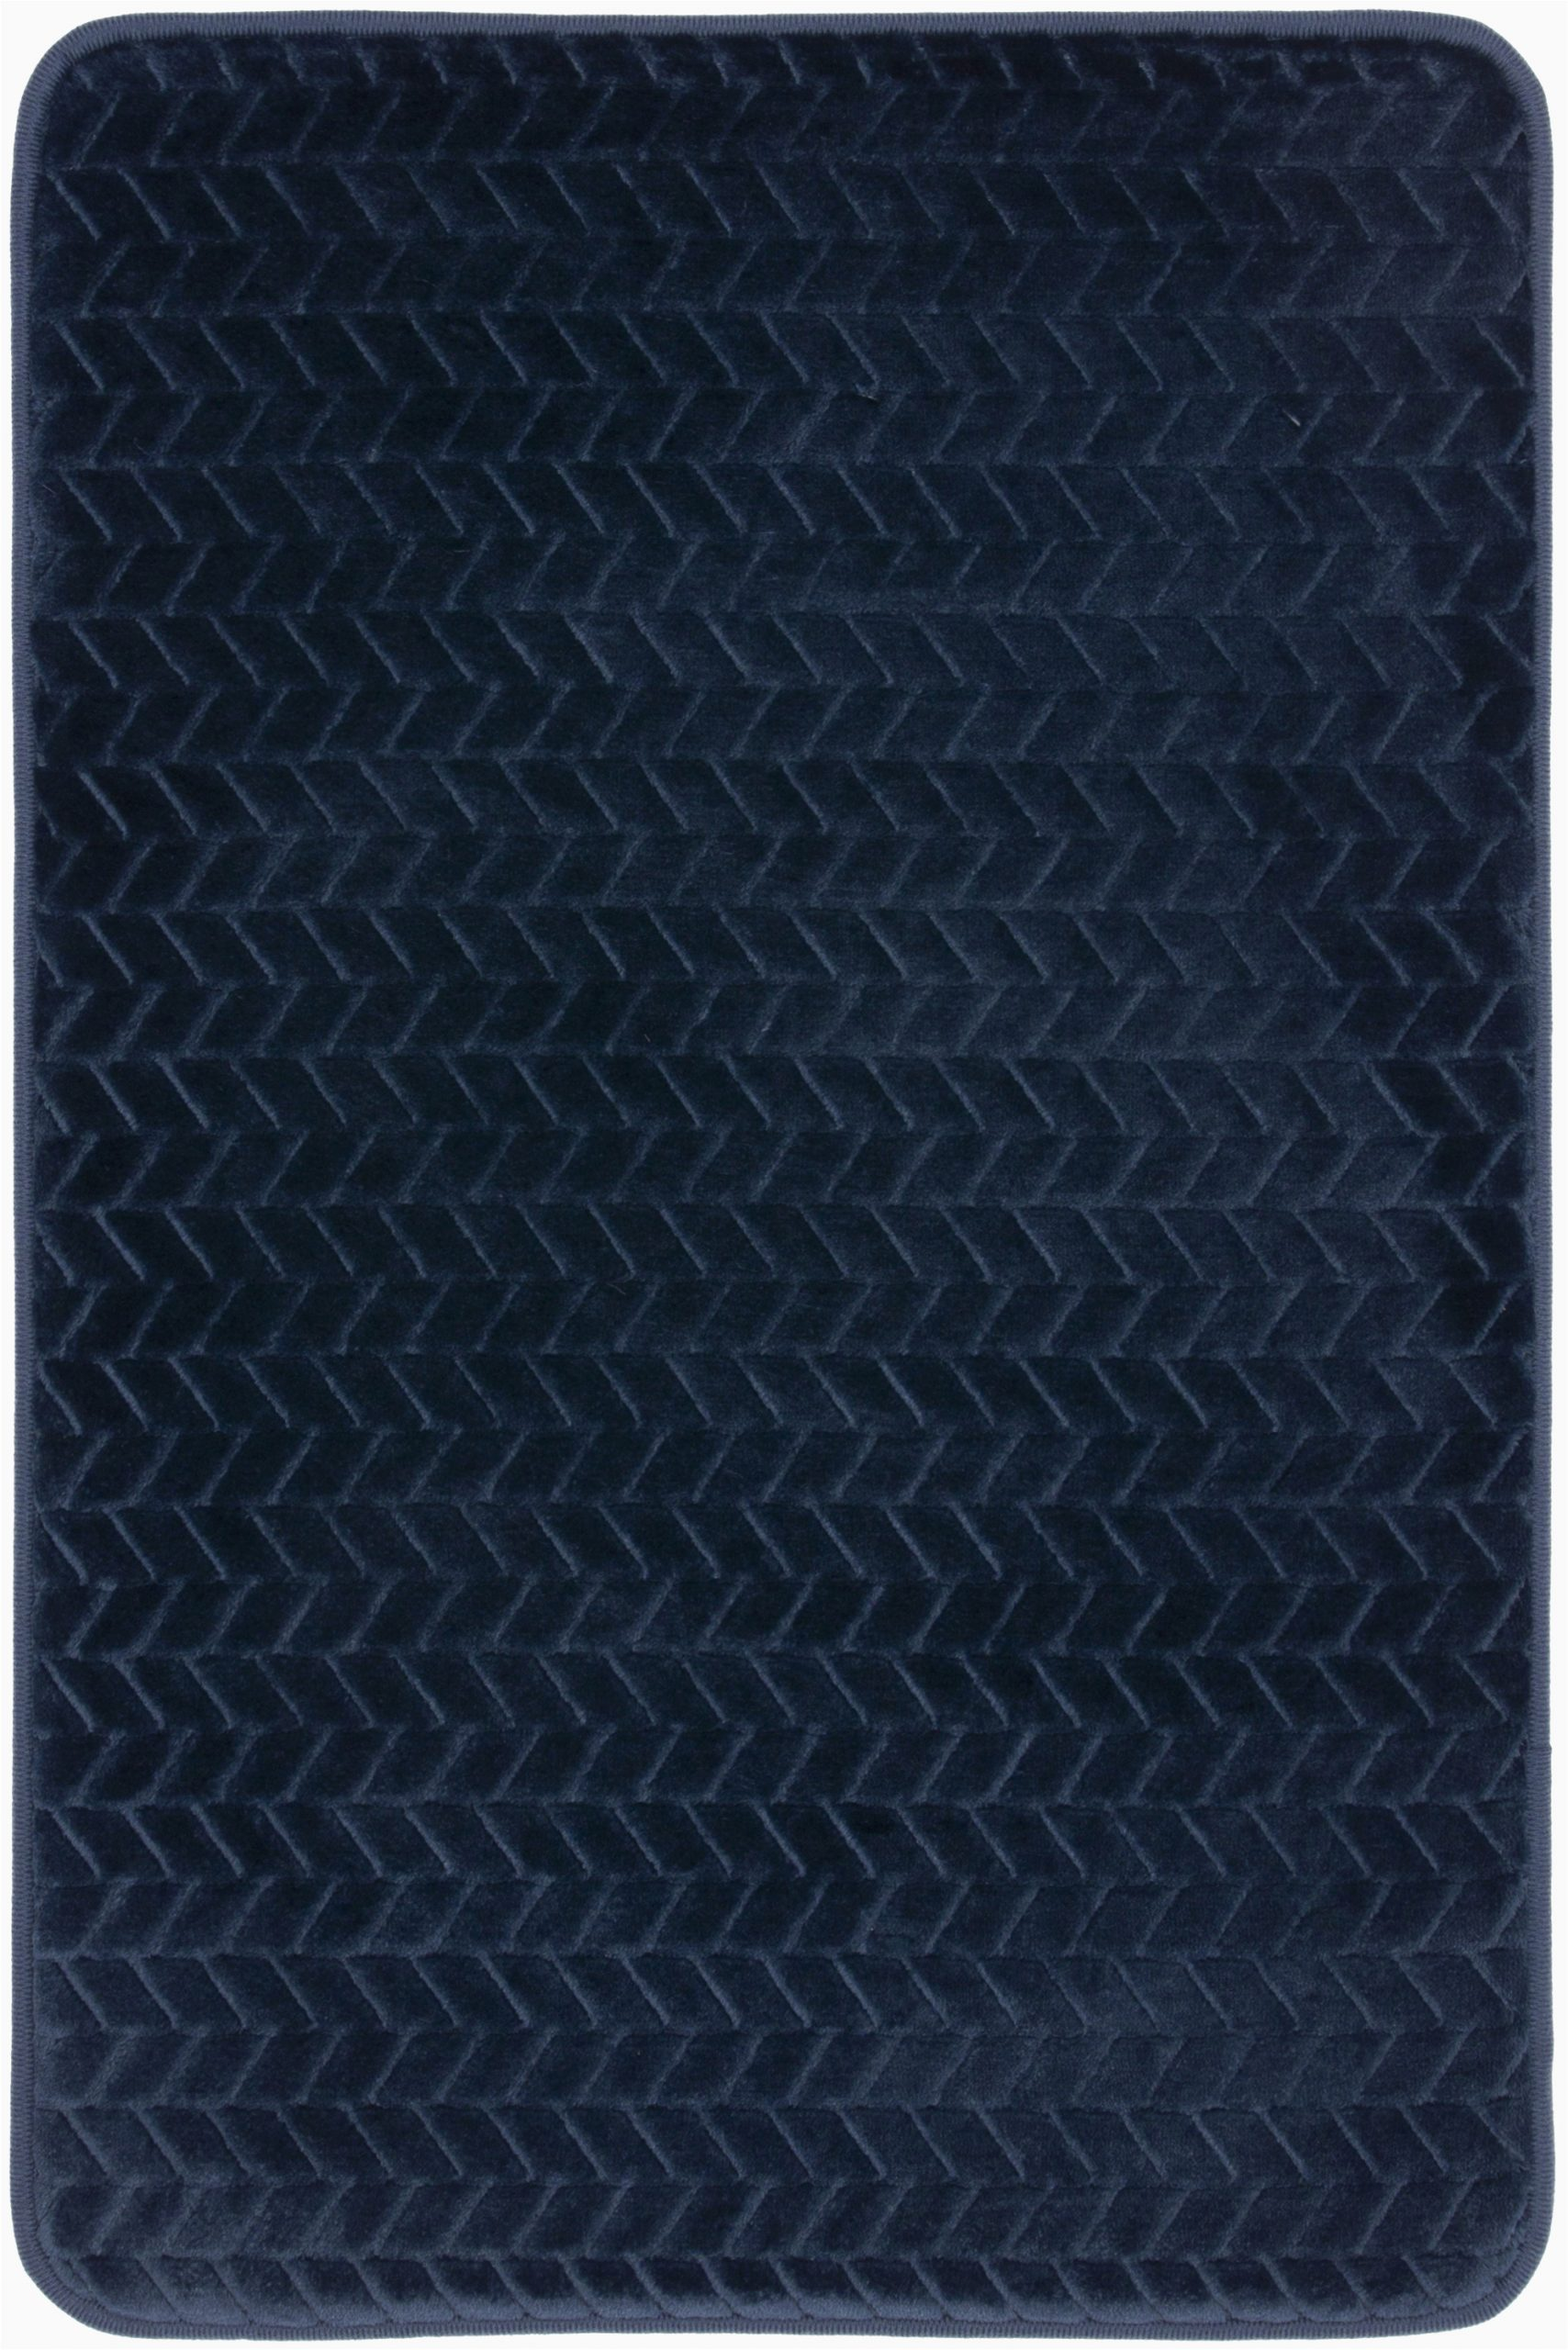 Mohawk Home Memory Foam Bath Rug Mohawk Memory Foam Bath Rug In Navy 18 X 27 Brickseek